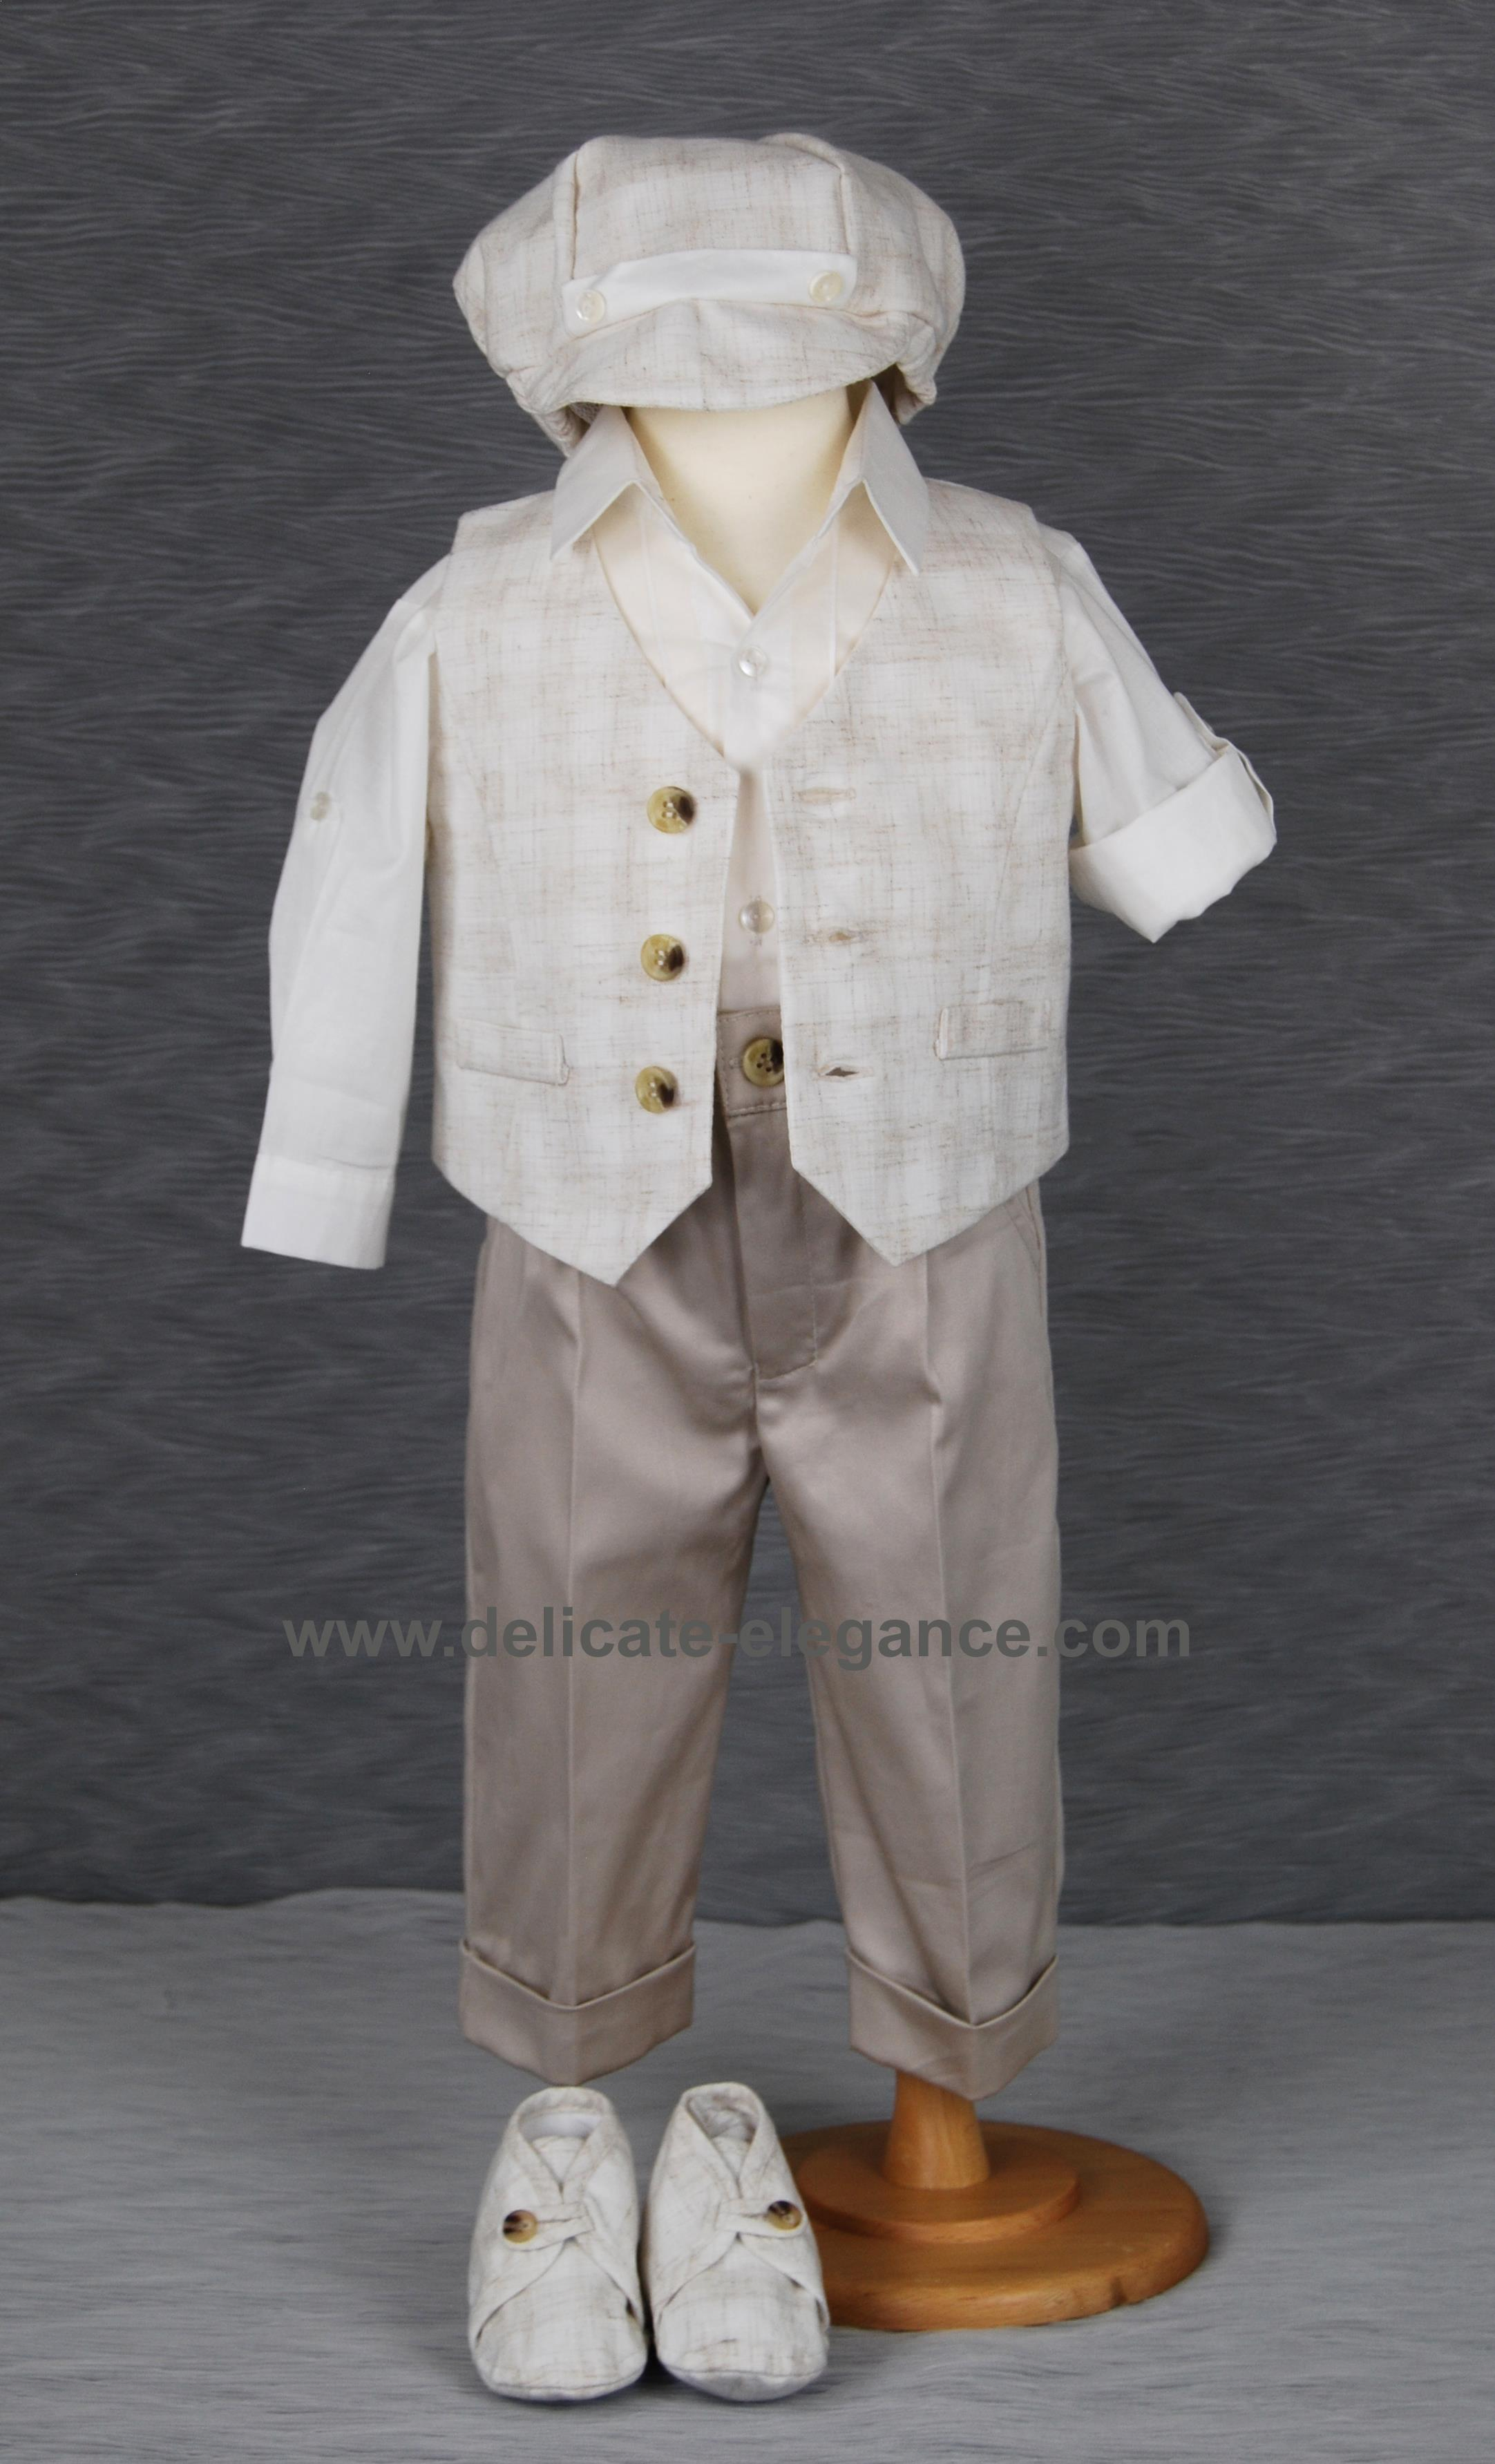 1211-03: Boys' Four-Piece Christening Suit